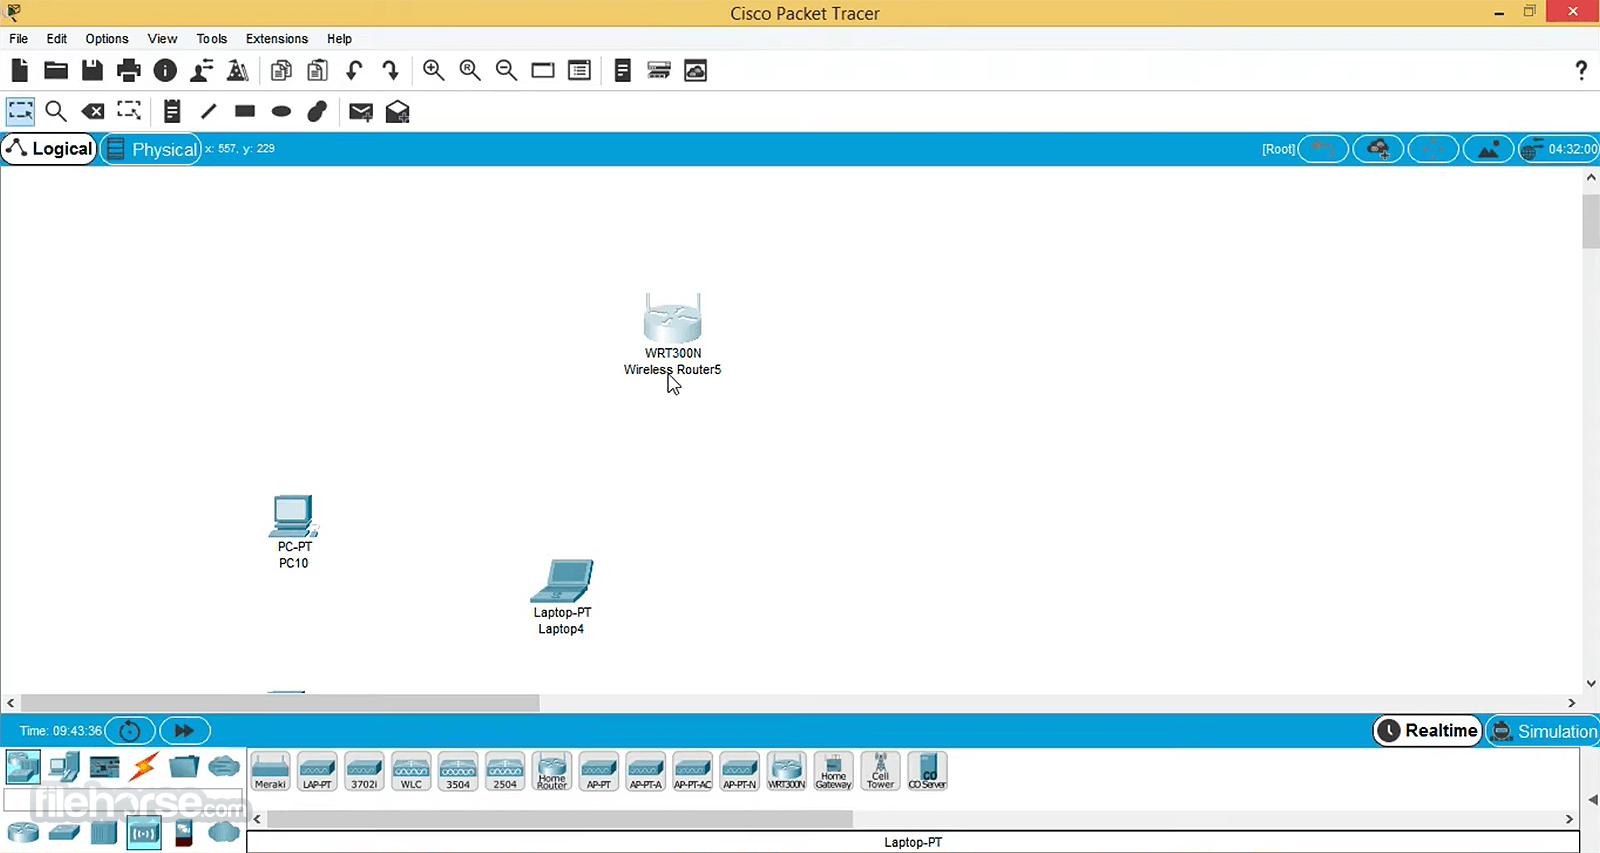 Cisco Packet Tracer 7 2 1 64 Bit Download For Windows